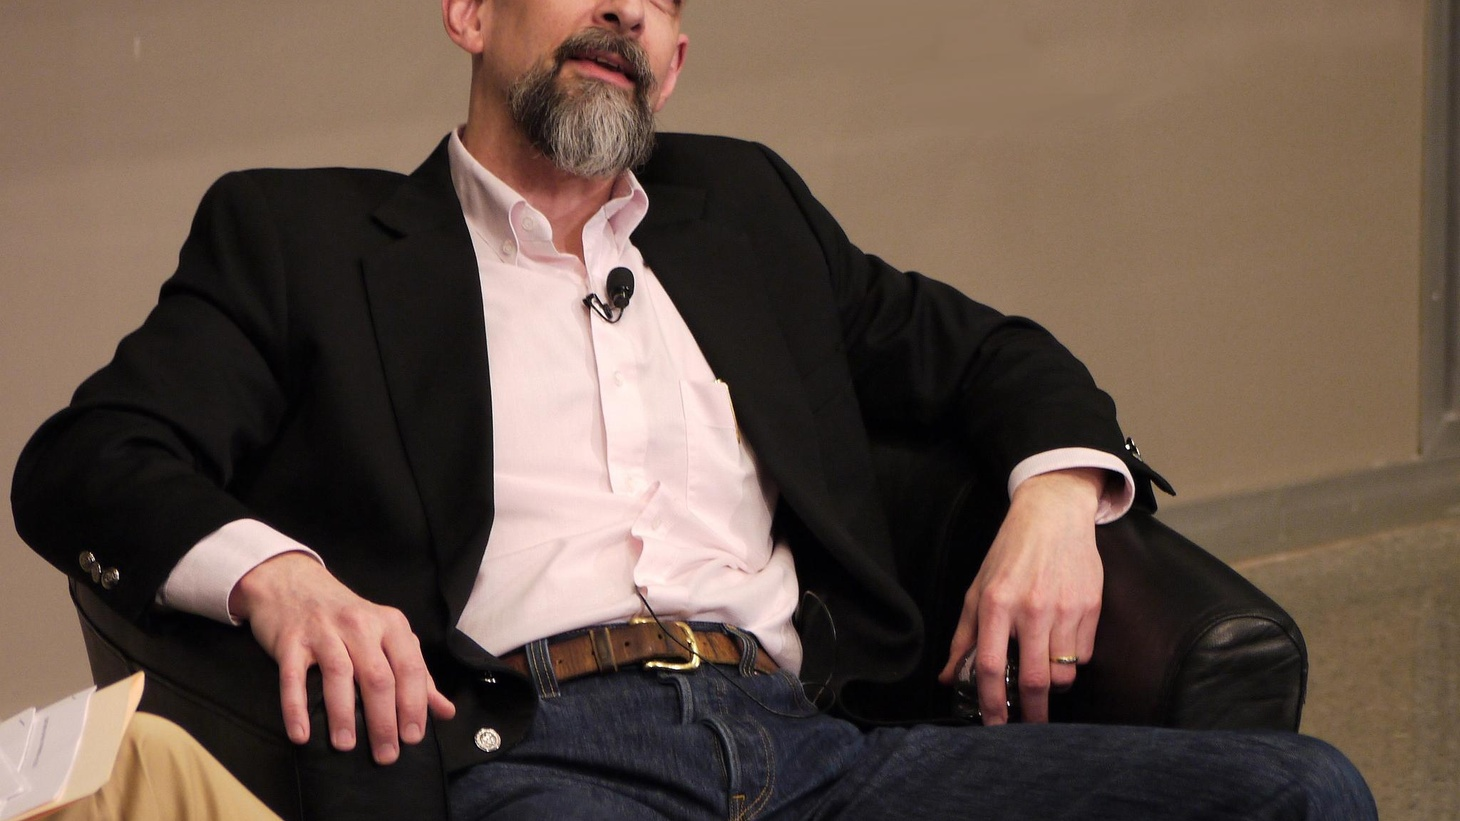 Neal Stephenson, a sort of contemporary Dickens (from Seattle,) talks about essays and other writing; science fiction and mainstream literature.